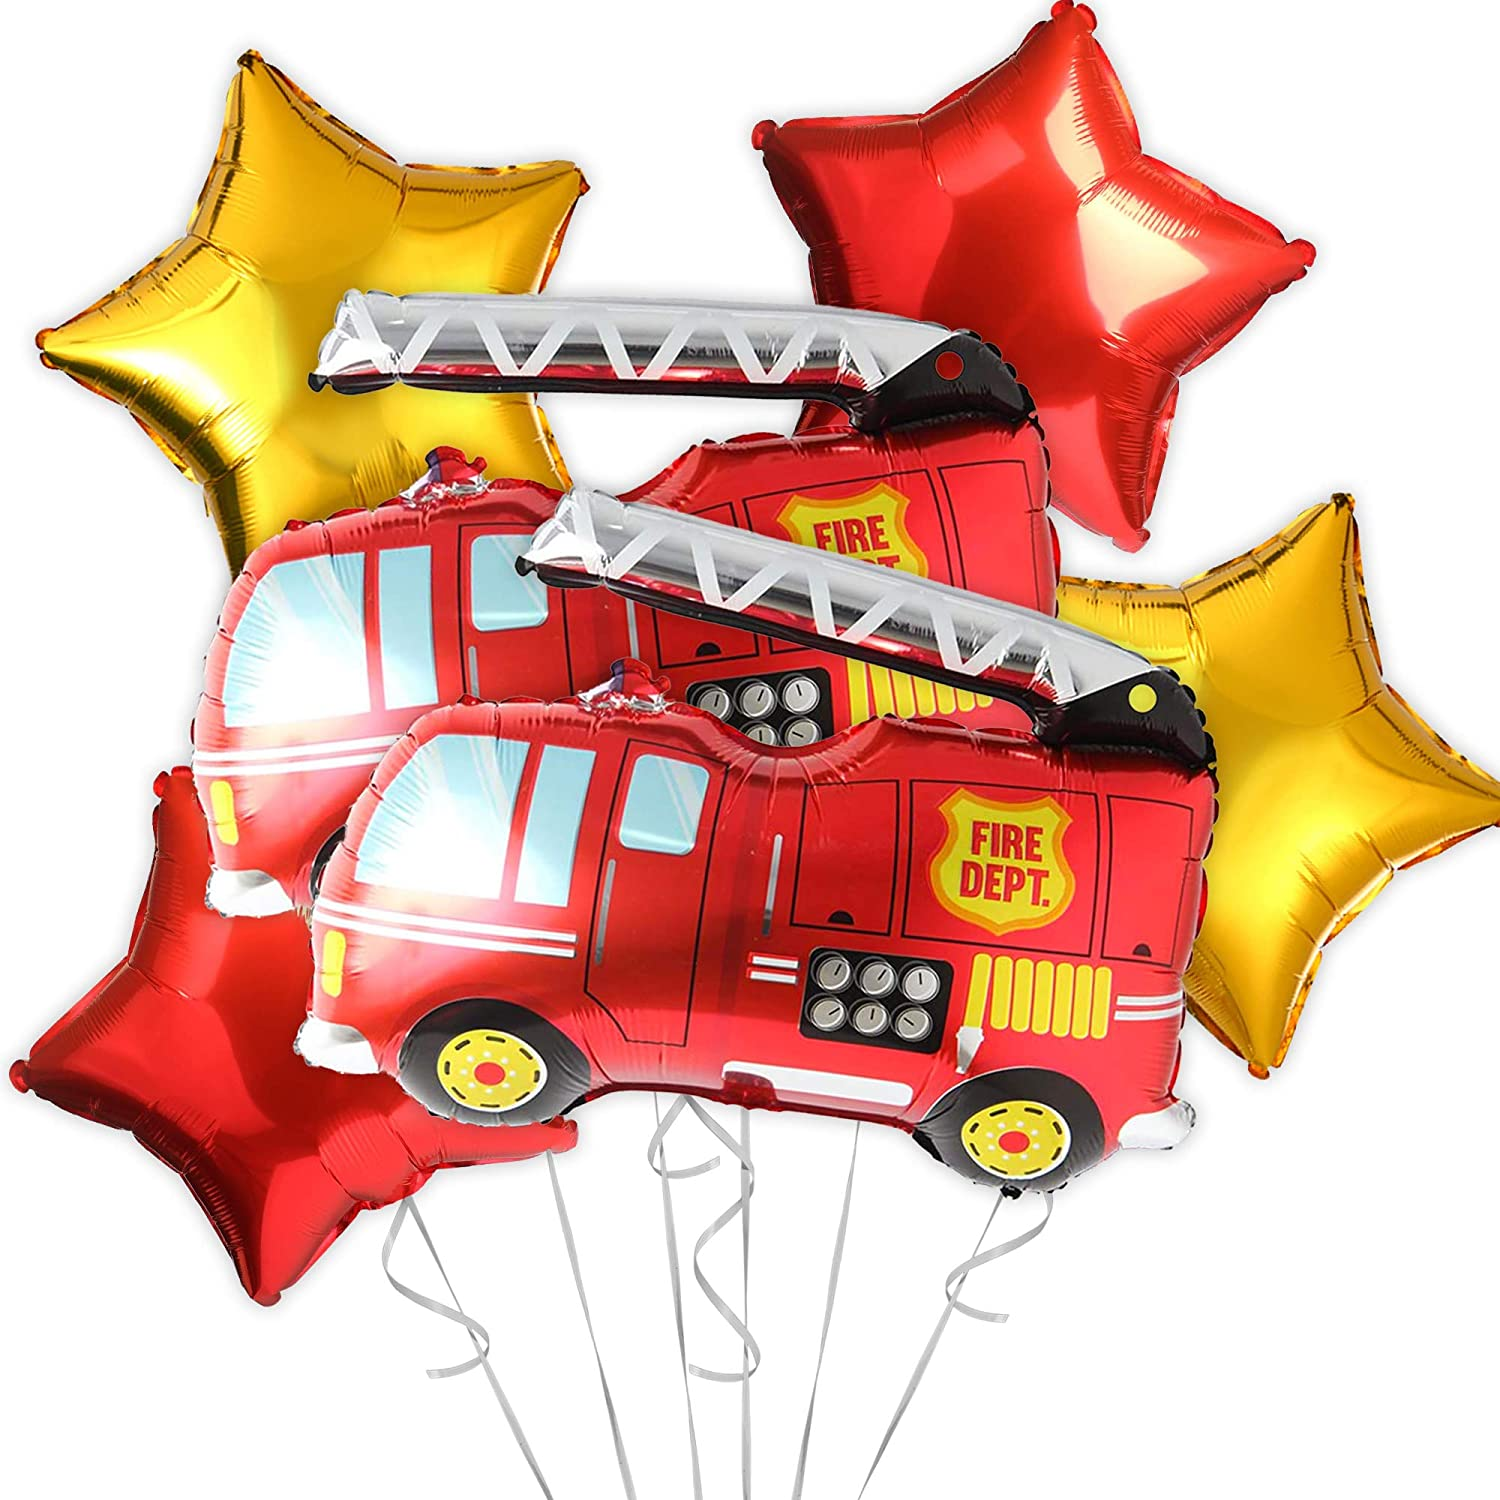 OMG Party Factory - Firetruck Balloons for Birthday Party | Fire Engine Rescue Themed Decorations Mylar Foil Helium Balloon Decor | Large Firefighter Truck Balloon Supplies Set in Red (Fire Truck)